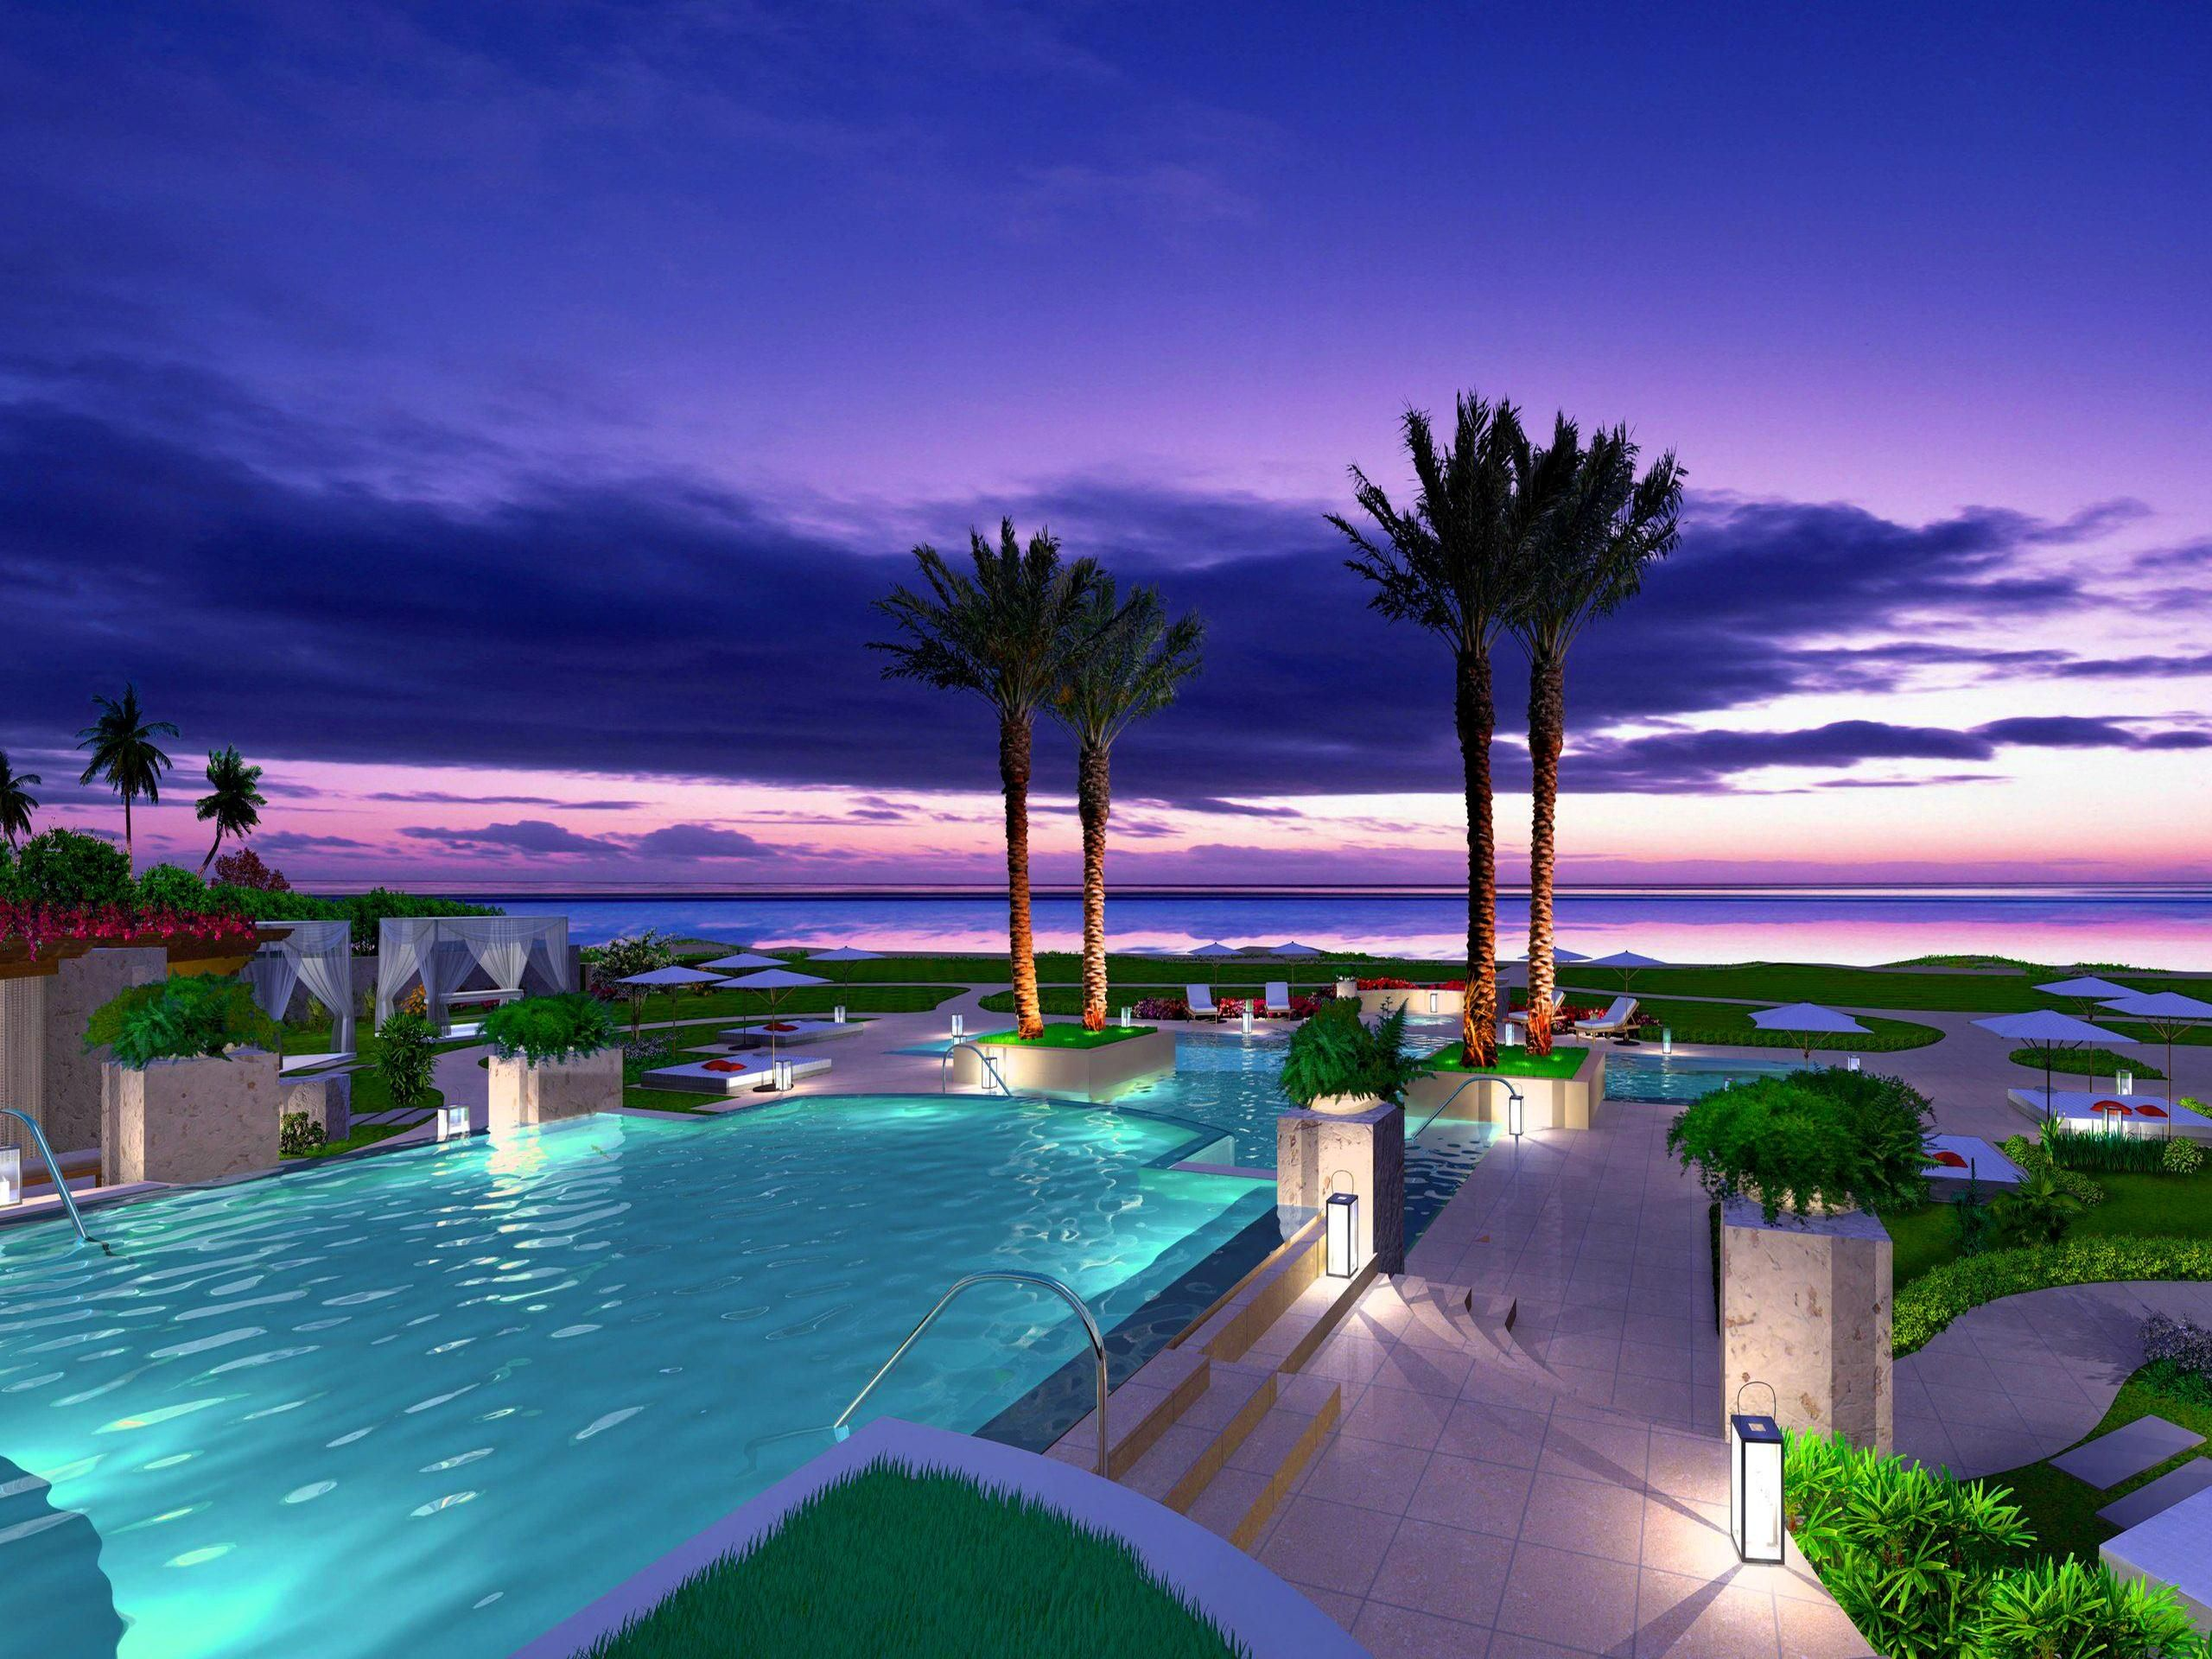 Pin By Itsjillstrif On Inspiration Cool Pools Vacation Images Amazing Swimming Pools Amazing swimming pool wallpaper